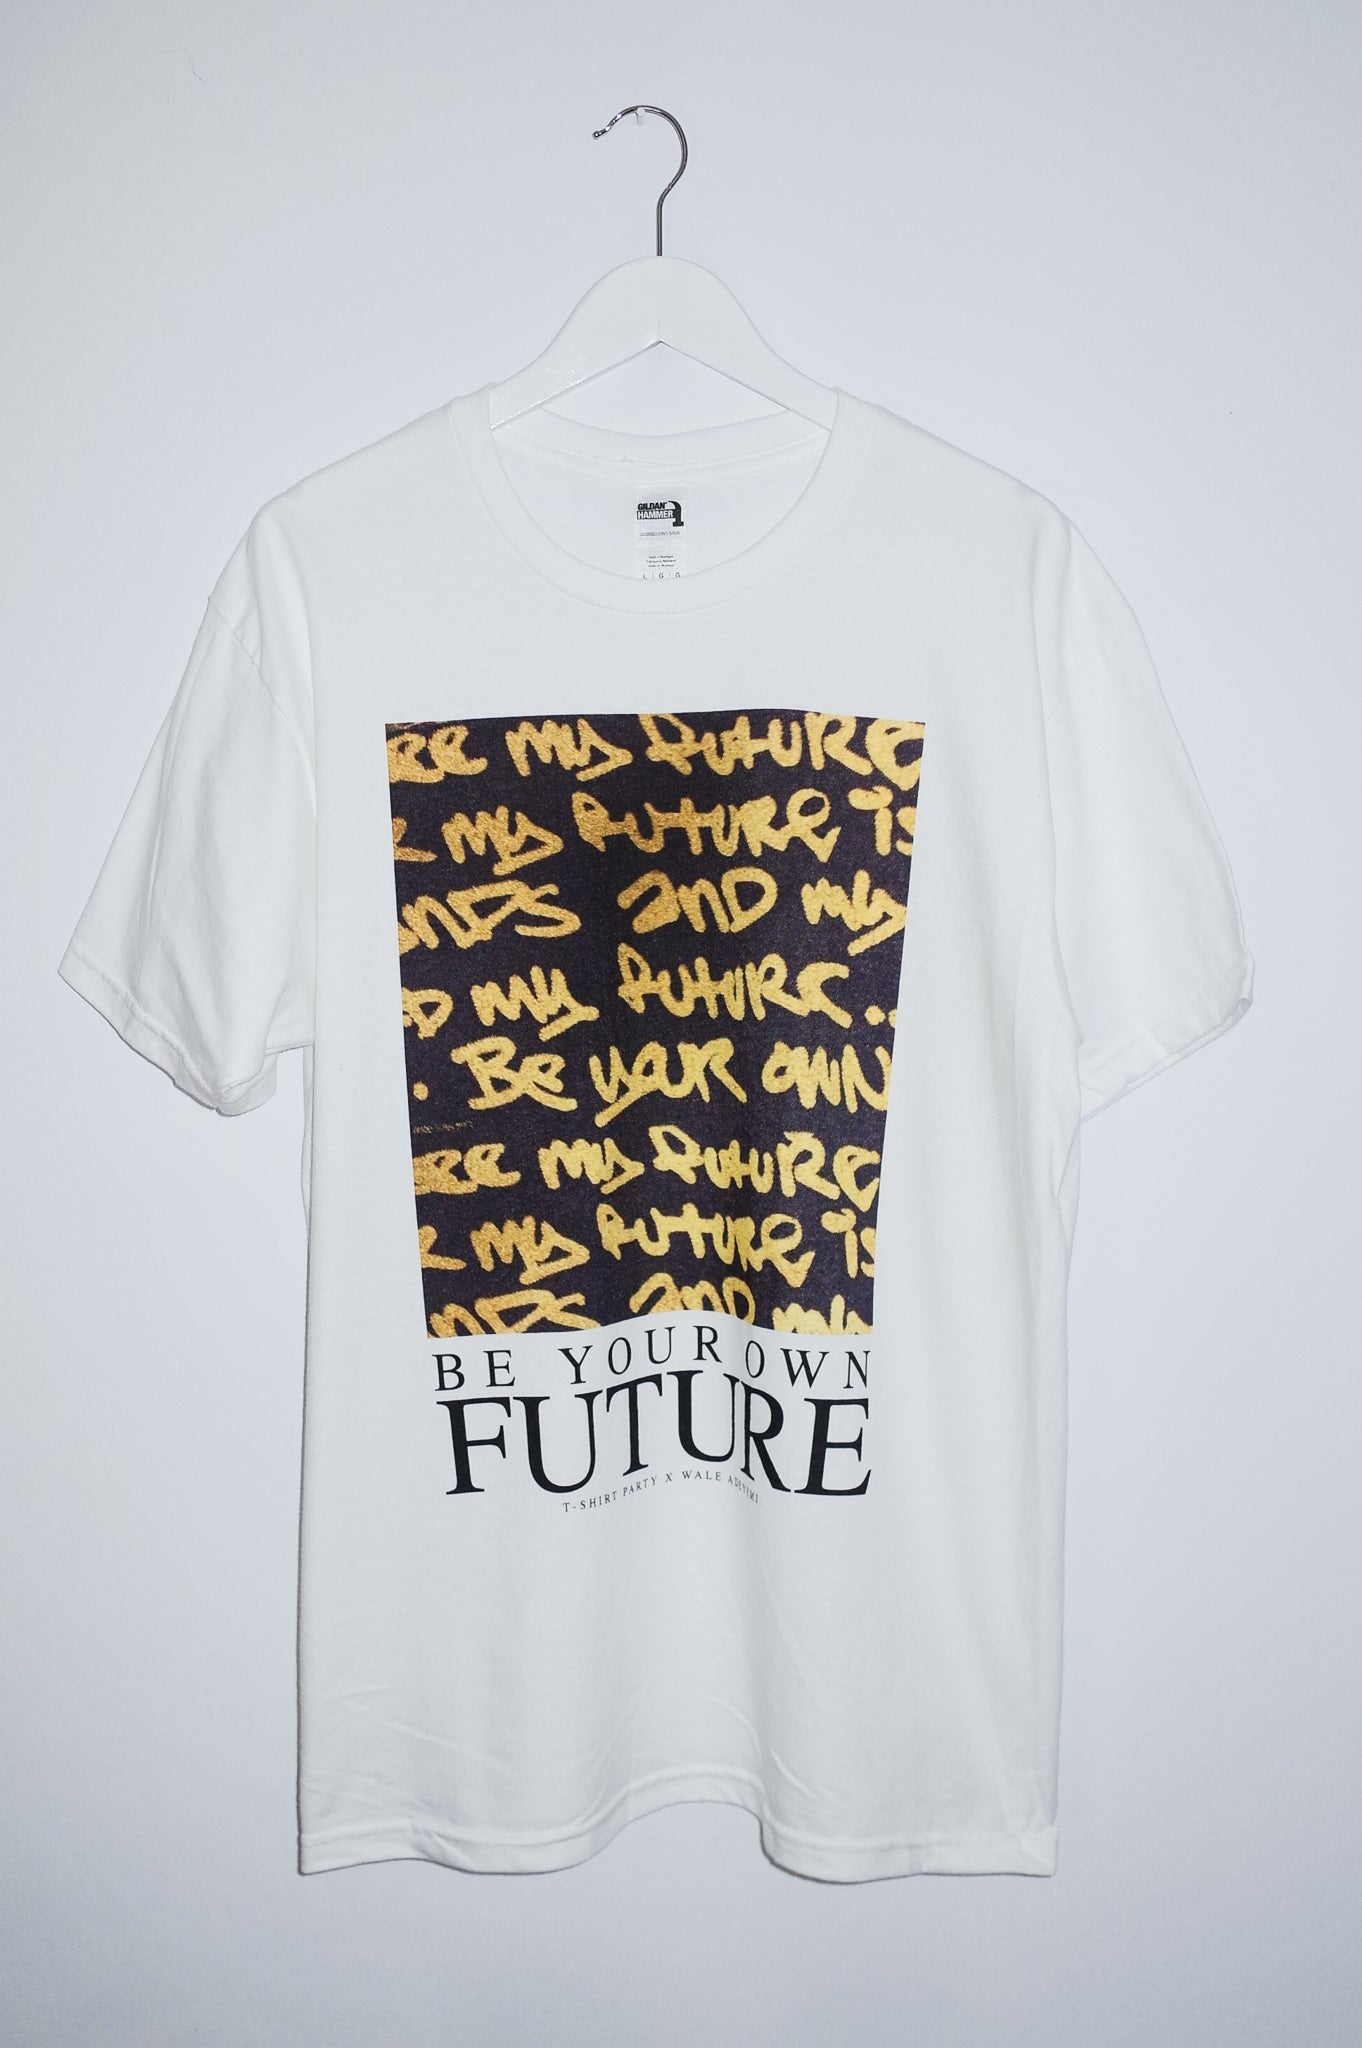 TSP072 BE YOUR OWN FUTURE